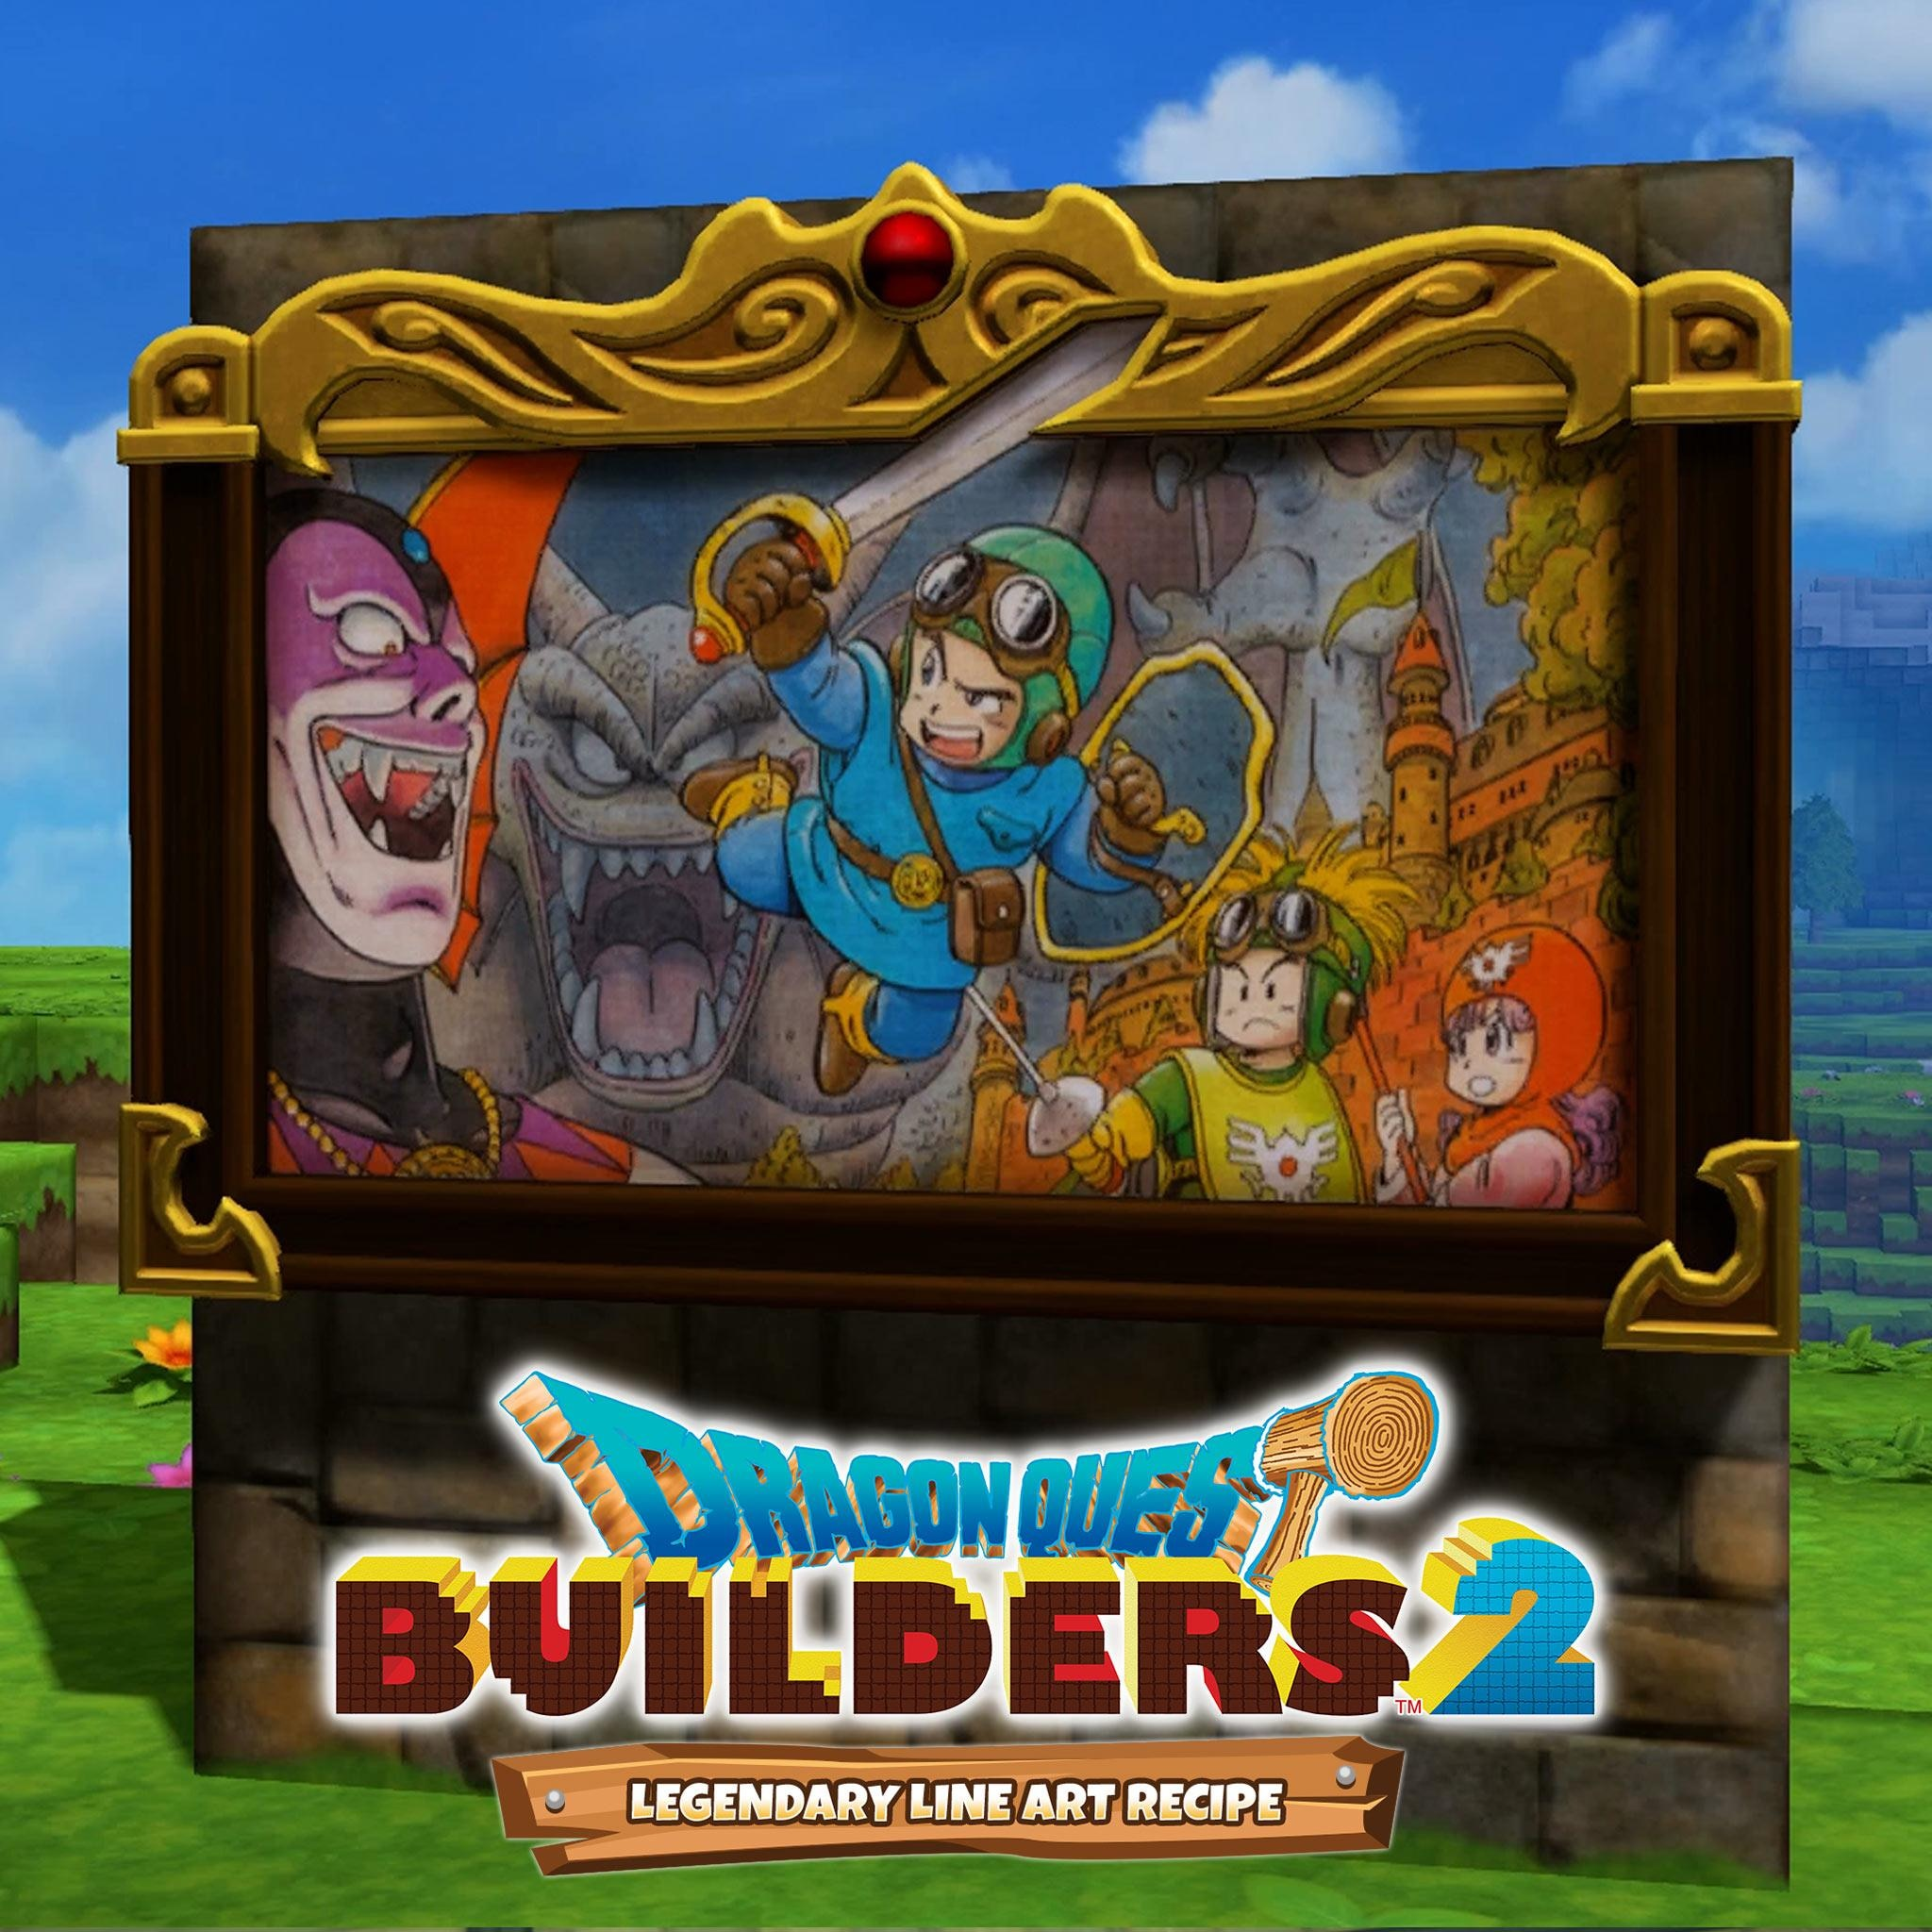 DQB2 - Legendary Line Art Recipe